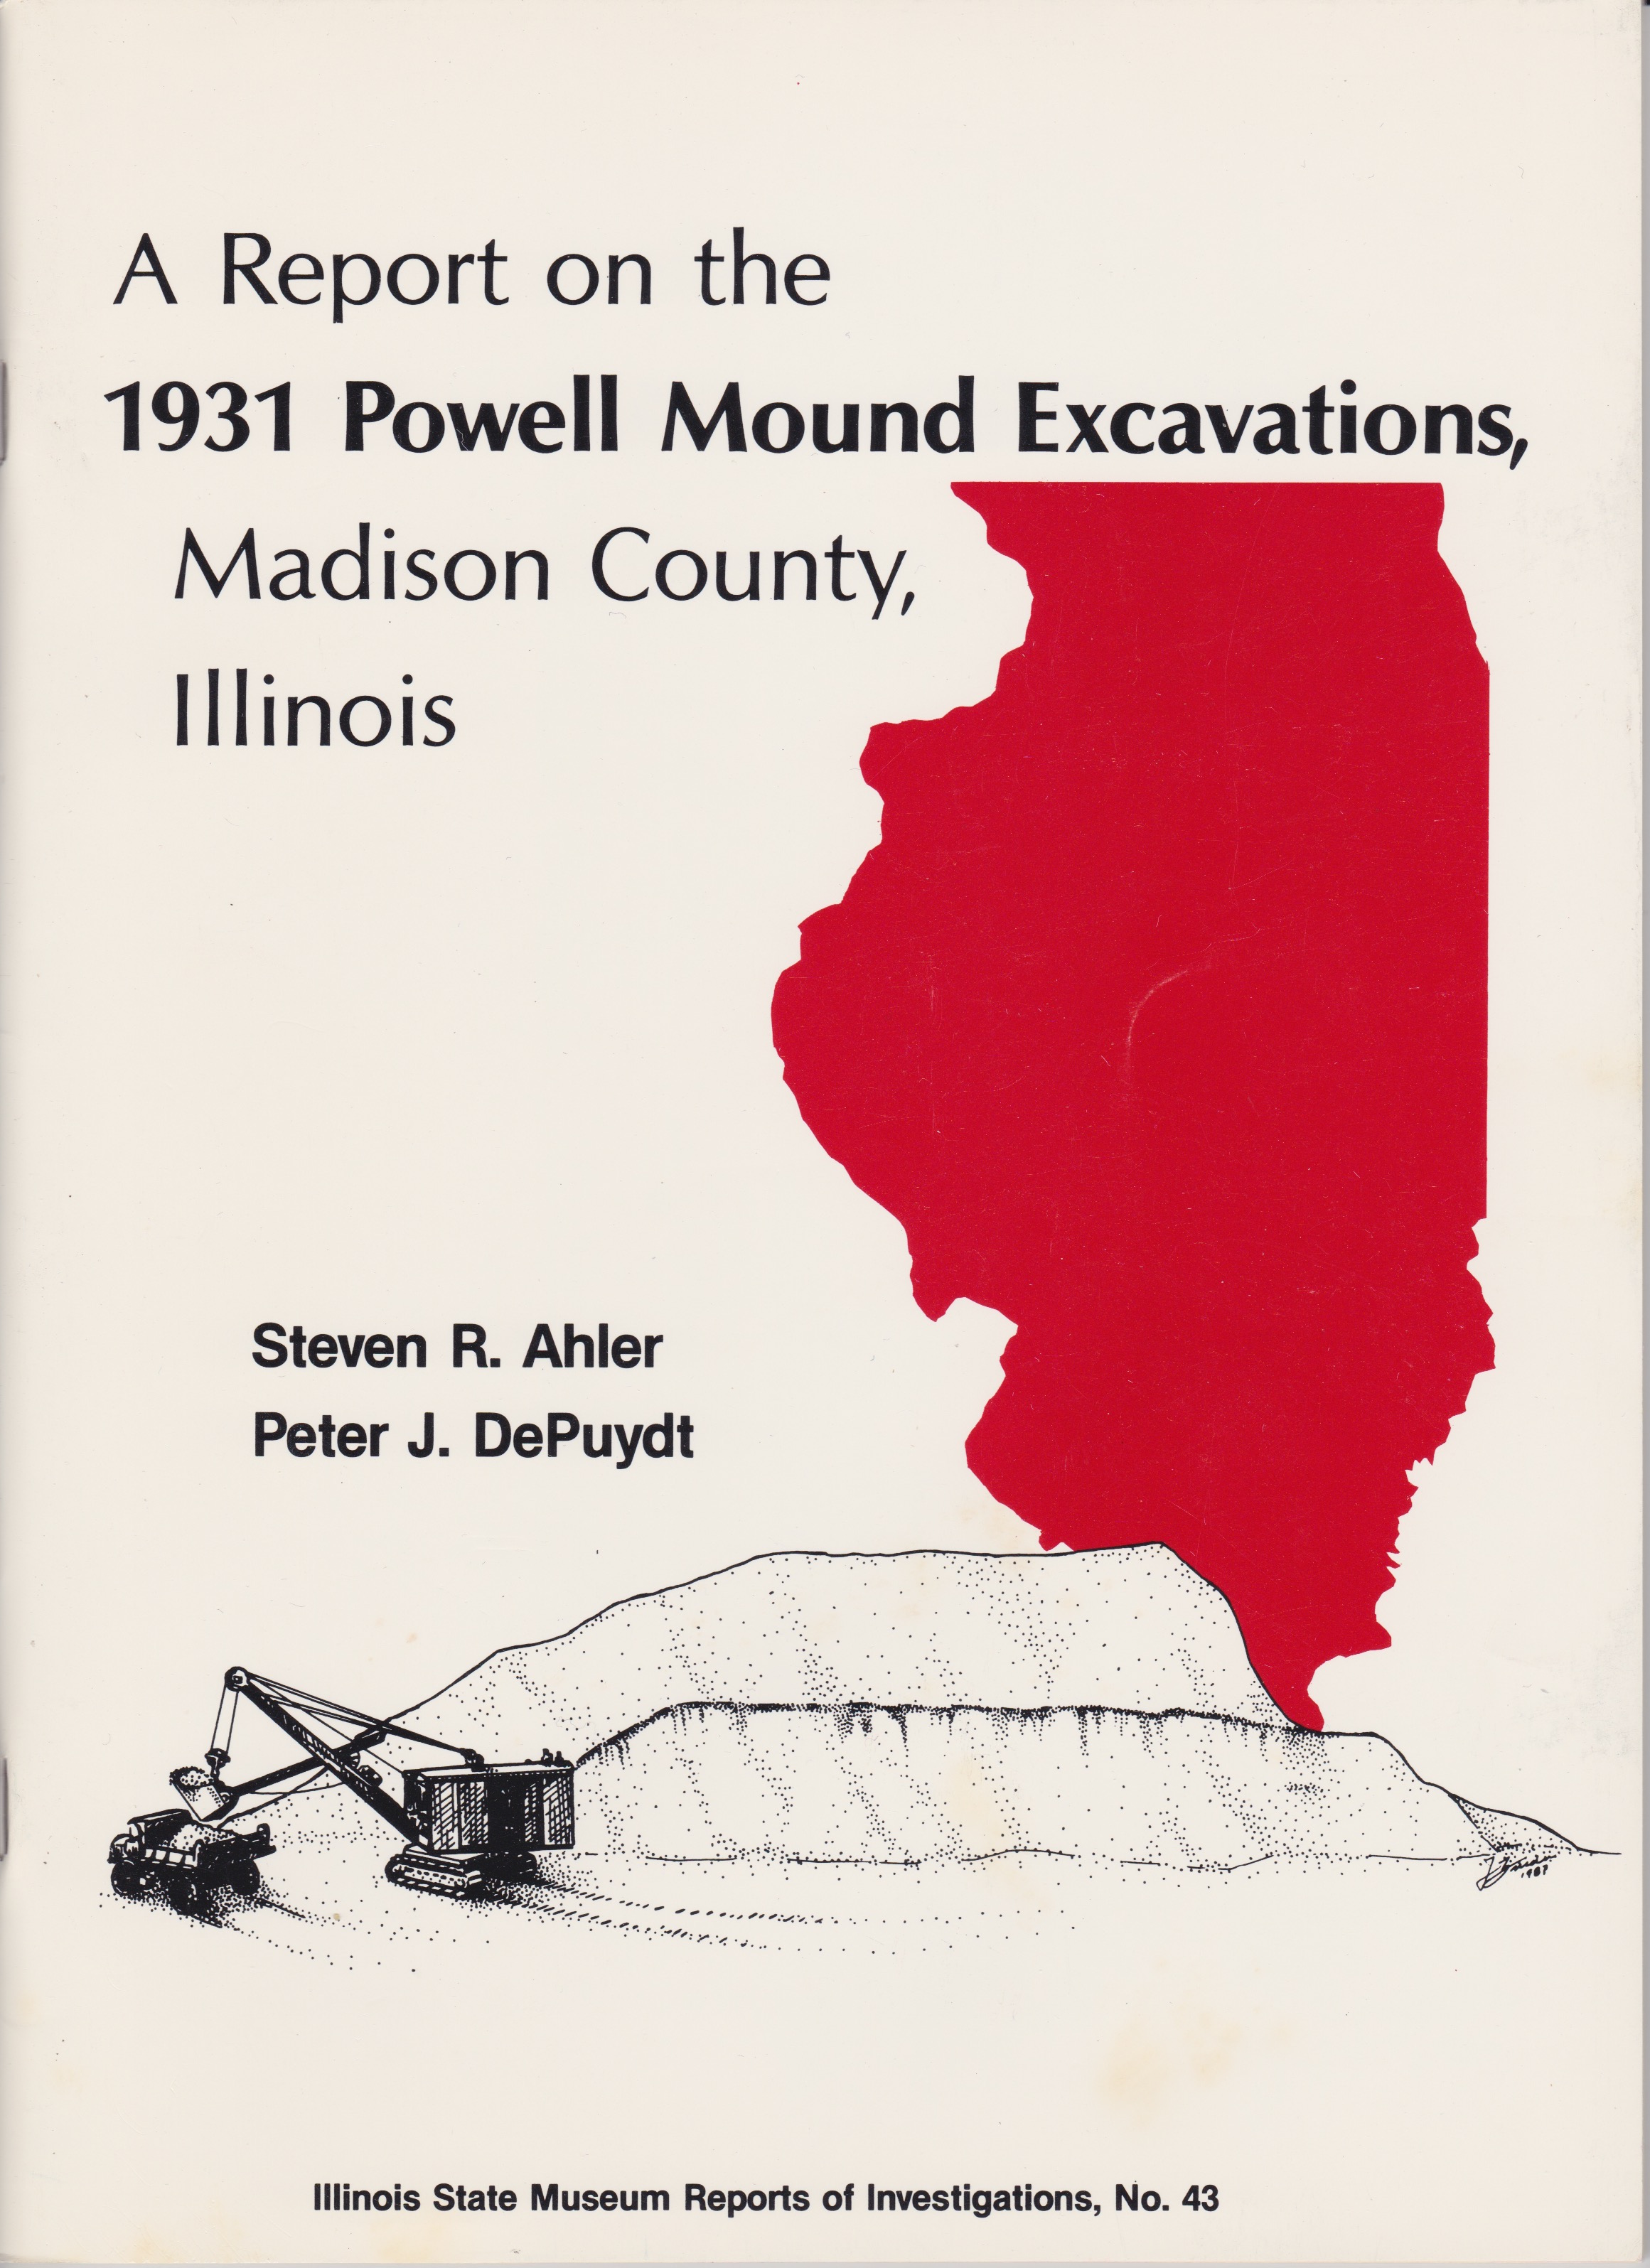 A Report on the 1931 Powell Mound Excavations, Madison County, Illinois